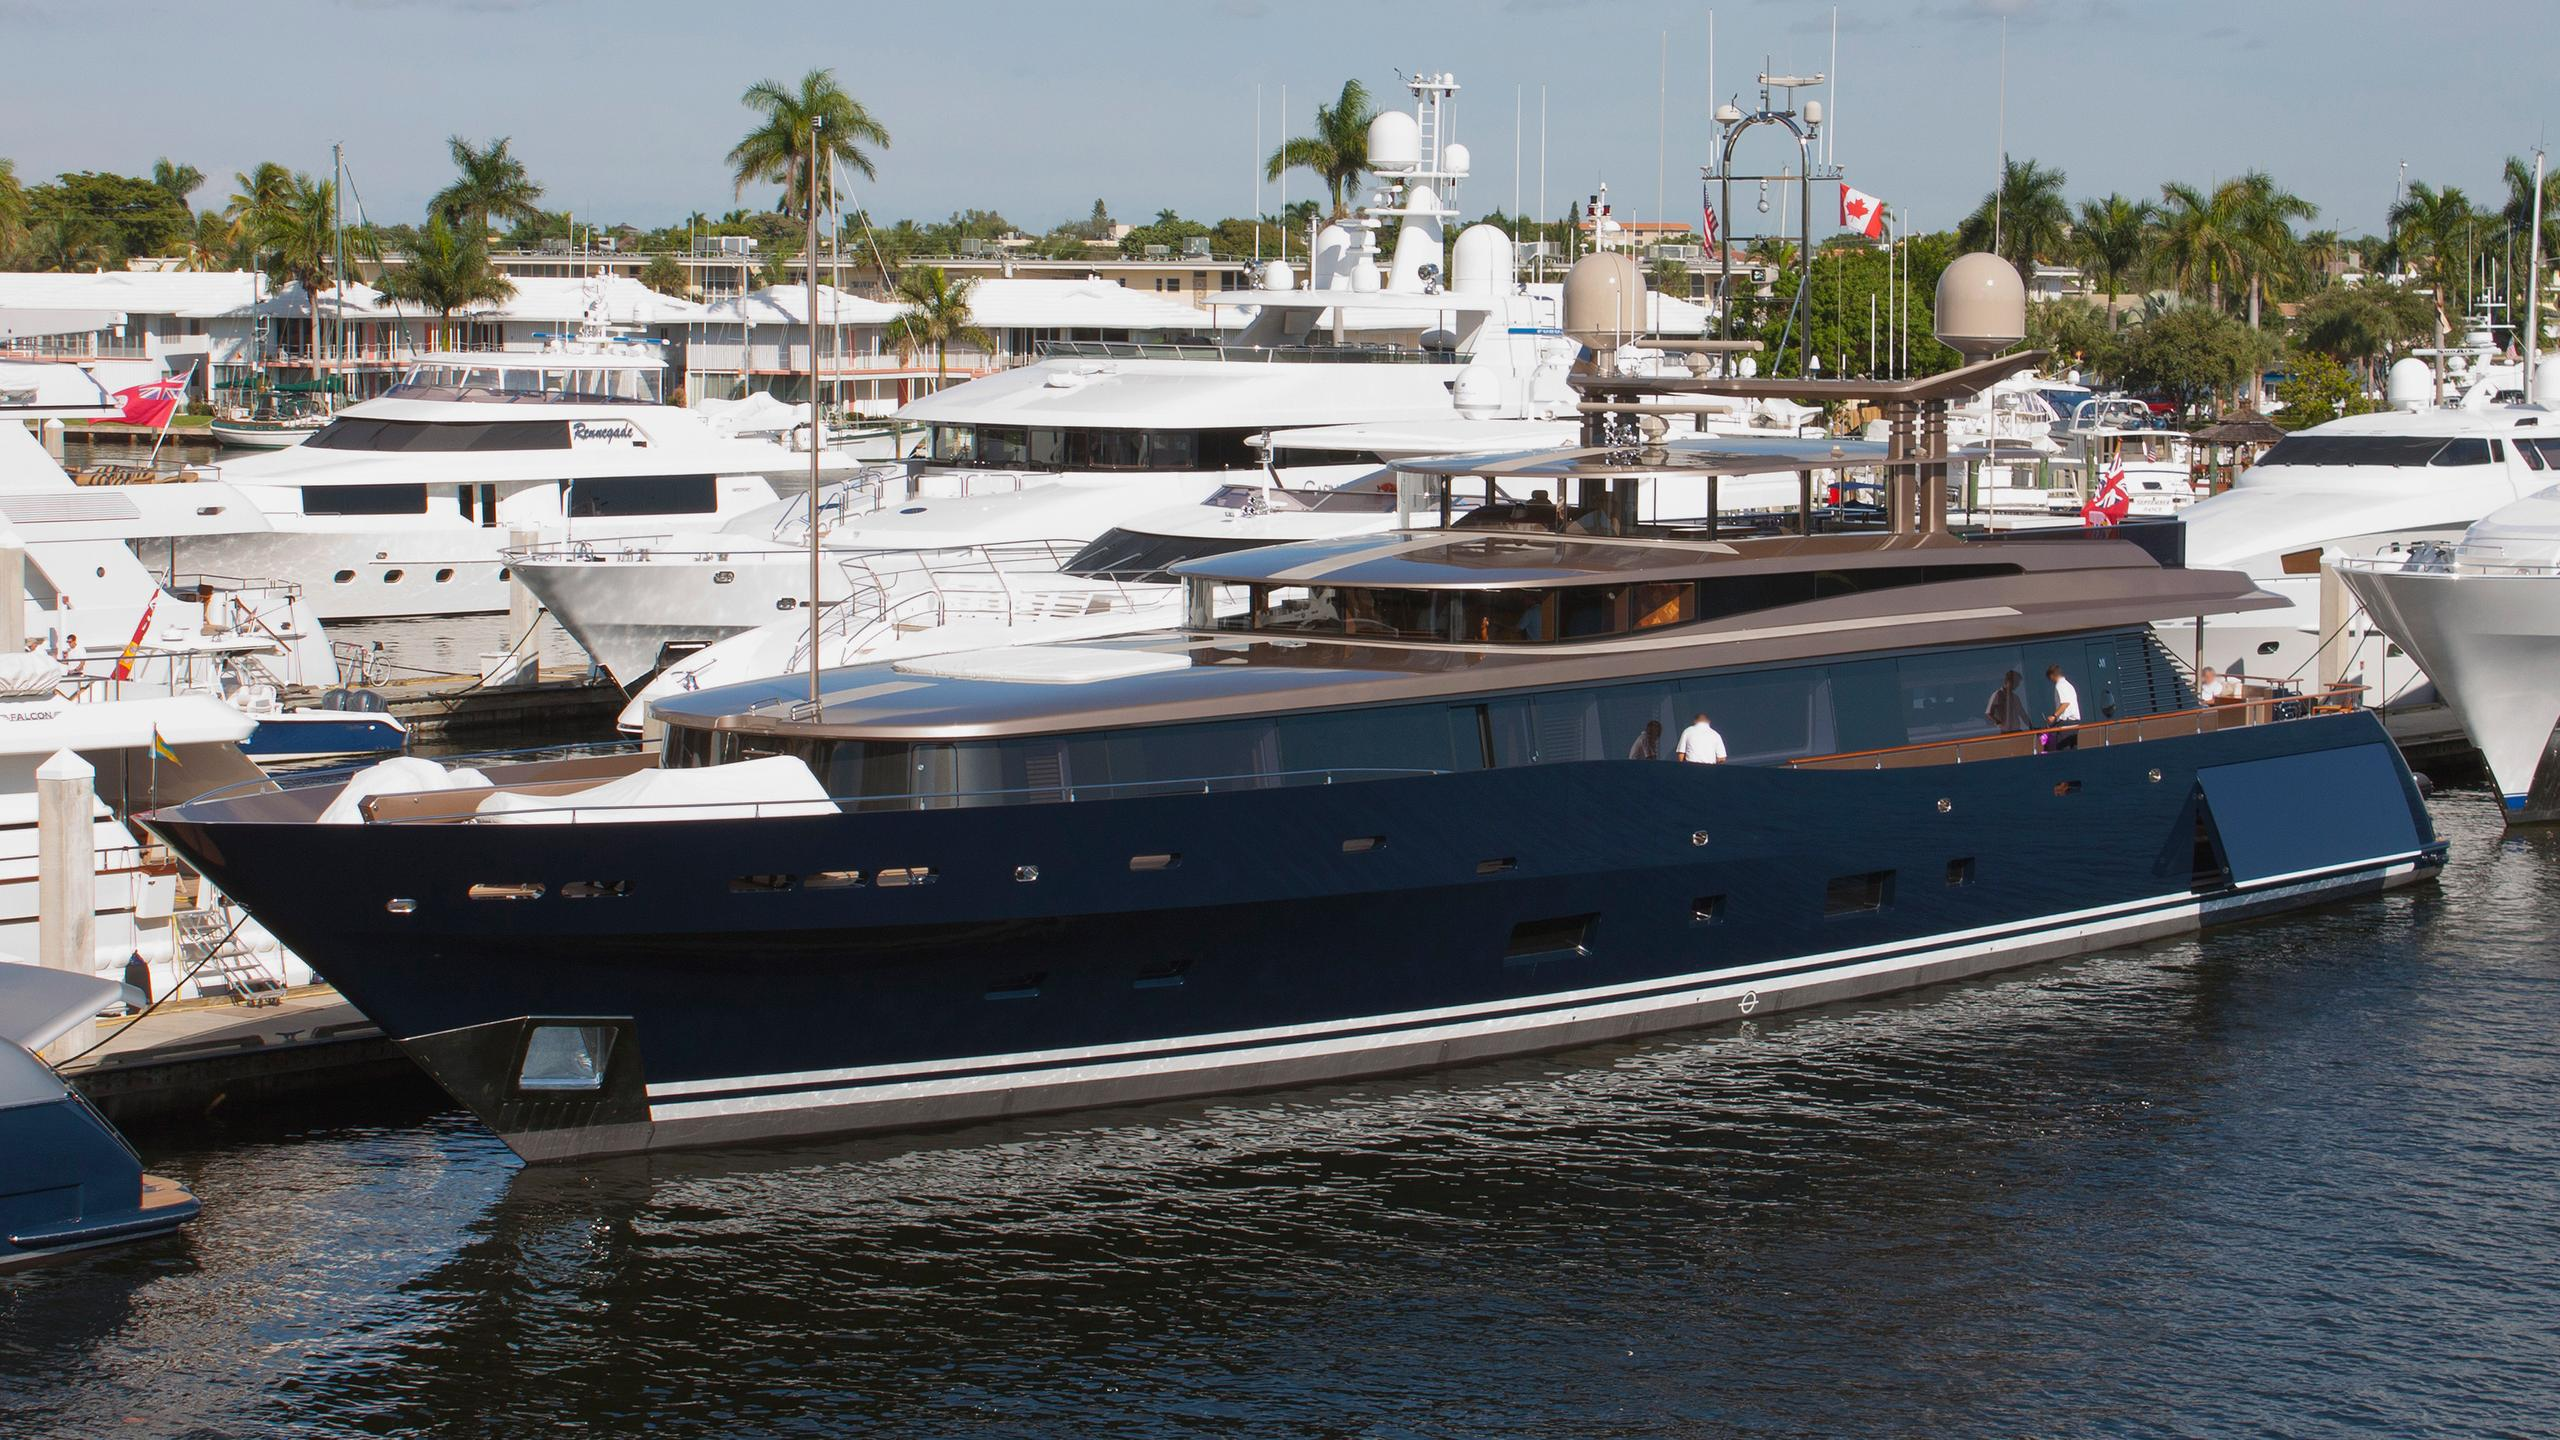 loretta-anne-motor-yacht-alloy-2012-47m-profile-moored